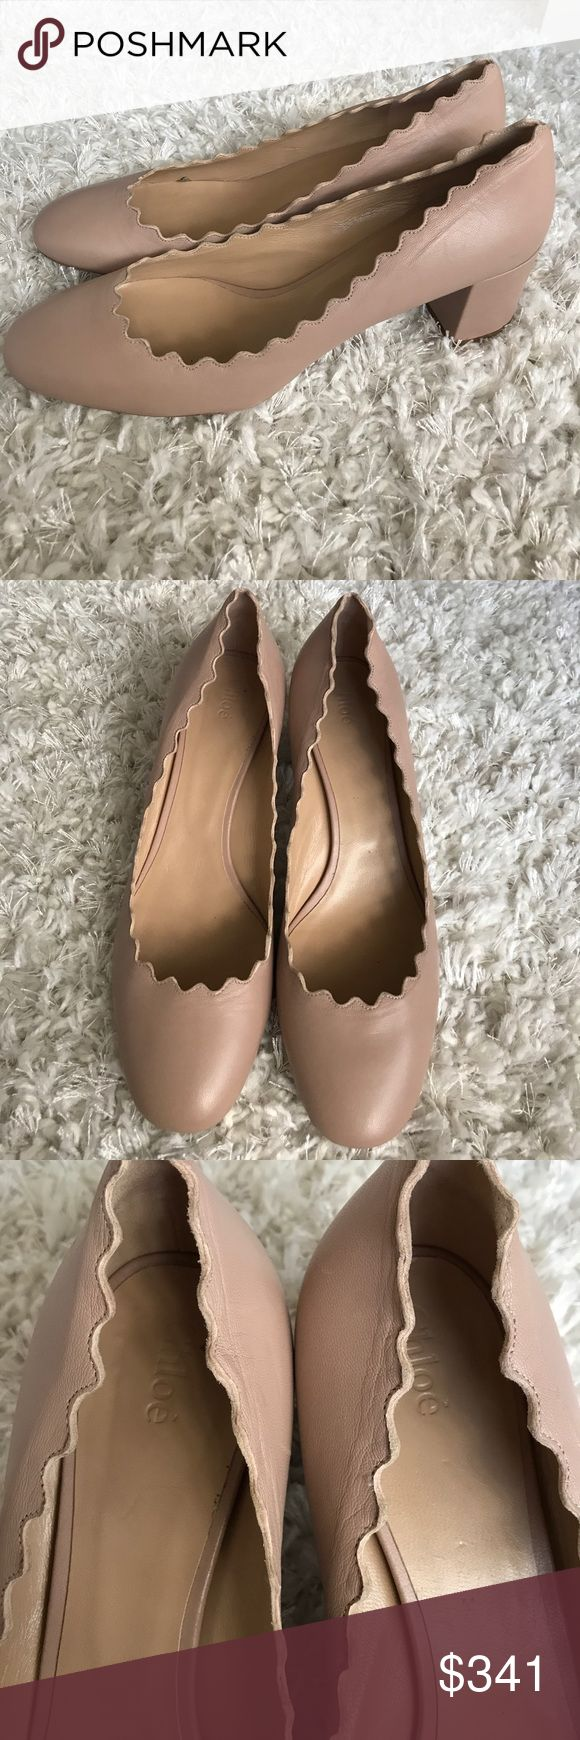 Chloe Lauren Scalloped Nude Pump Perfect for the working woman or pair great with jeans and a button up, these have been used as shown, have scuffs in soles and outer soles and leather is worn, I do not have the dustbag or box, size 41, run small and fit like size 11 Chloe Shoes Heels